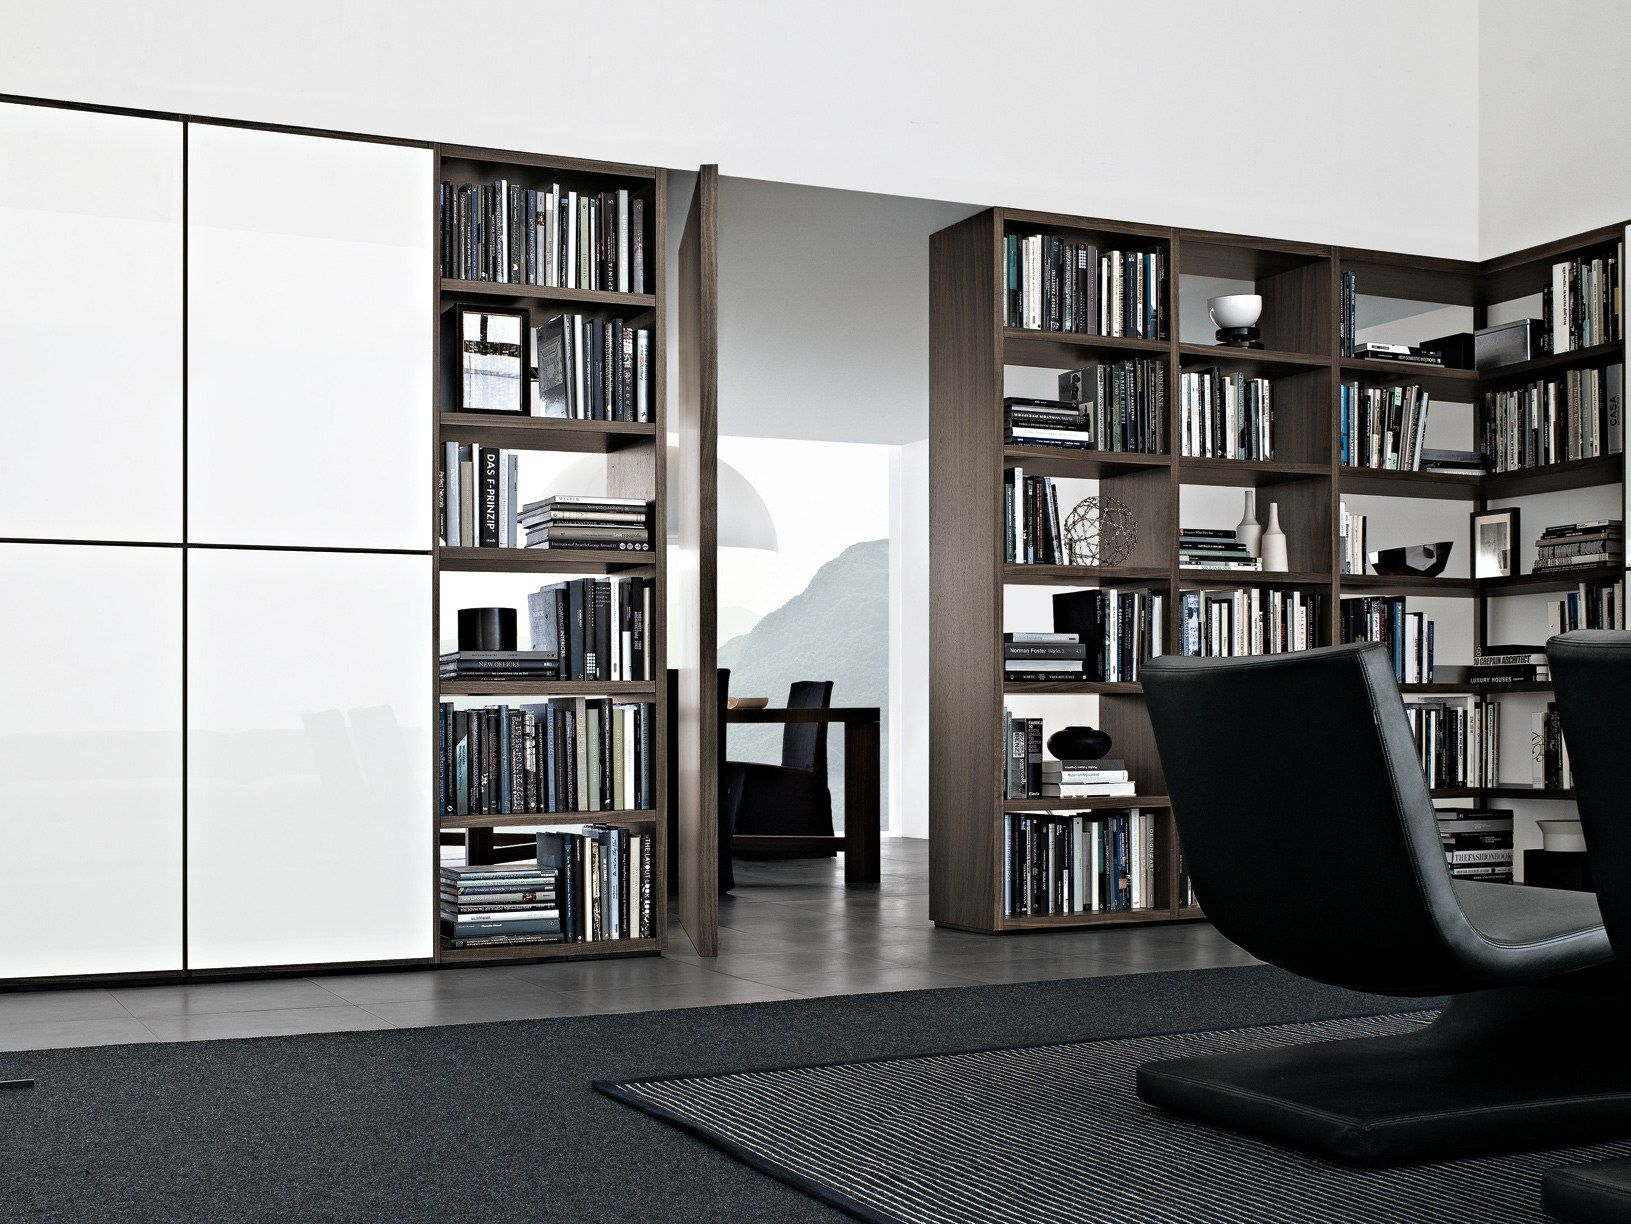 Sectional Wooden Bookcase Wall System Collection By Poliform